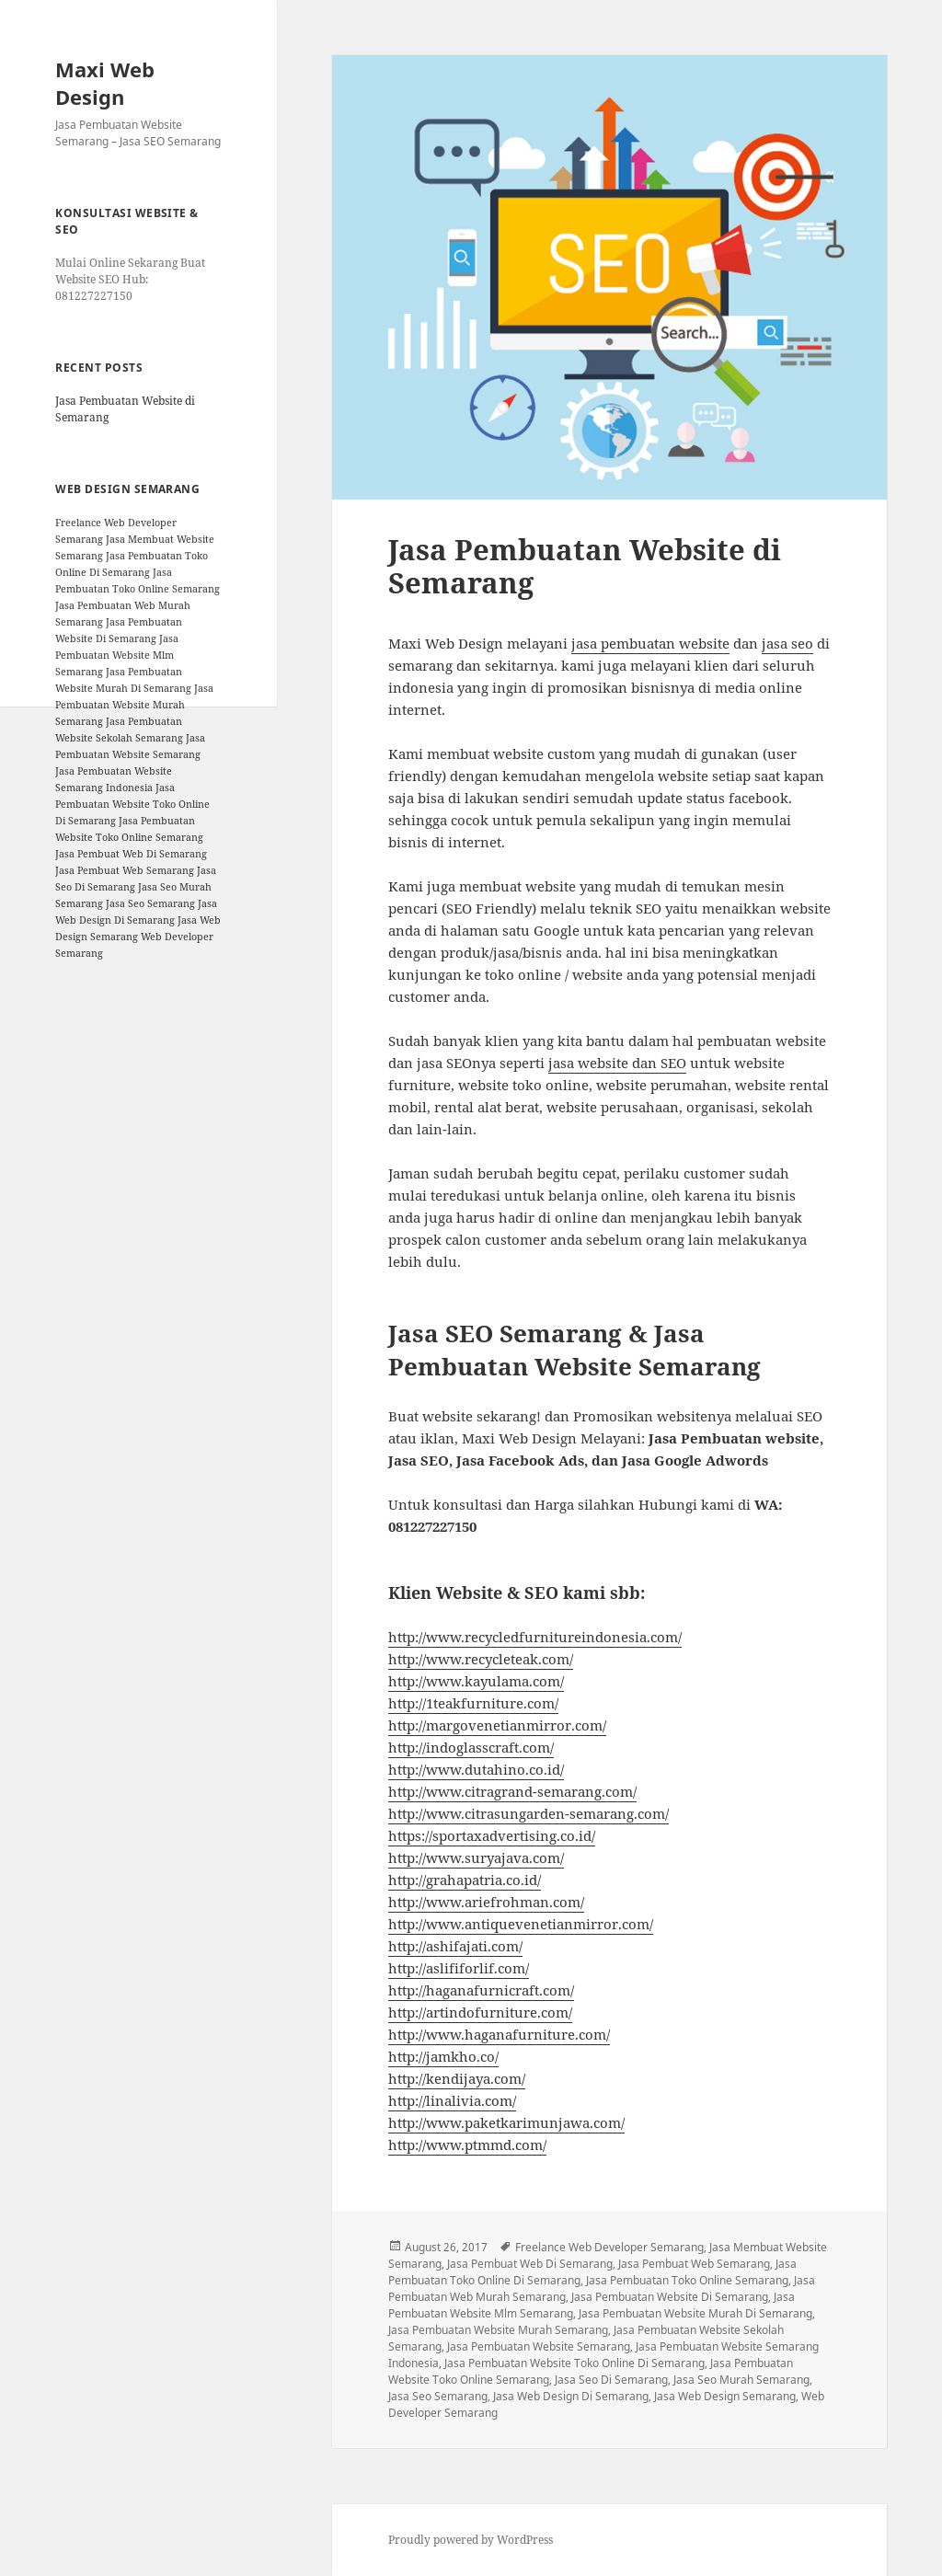 Maxi Web Design Competitors Revenue And Employees Owler